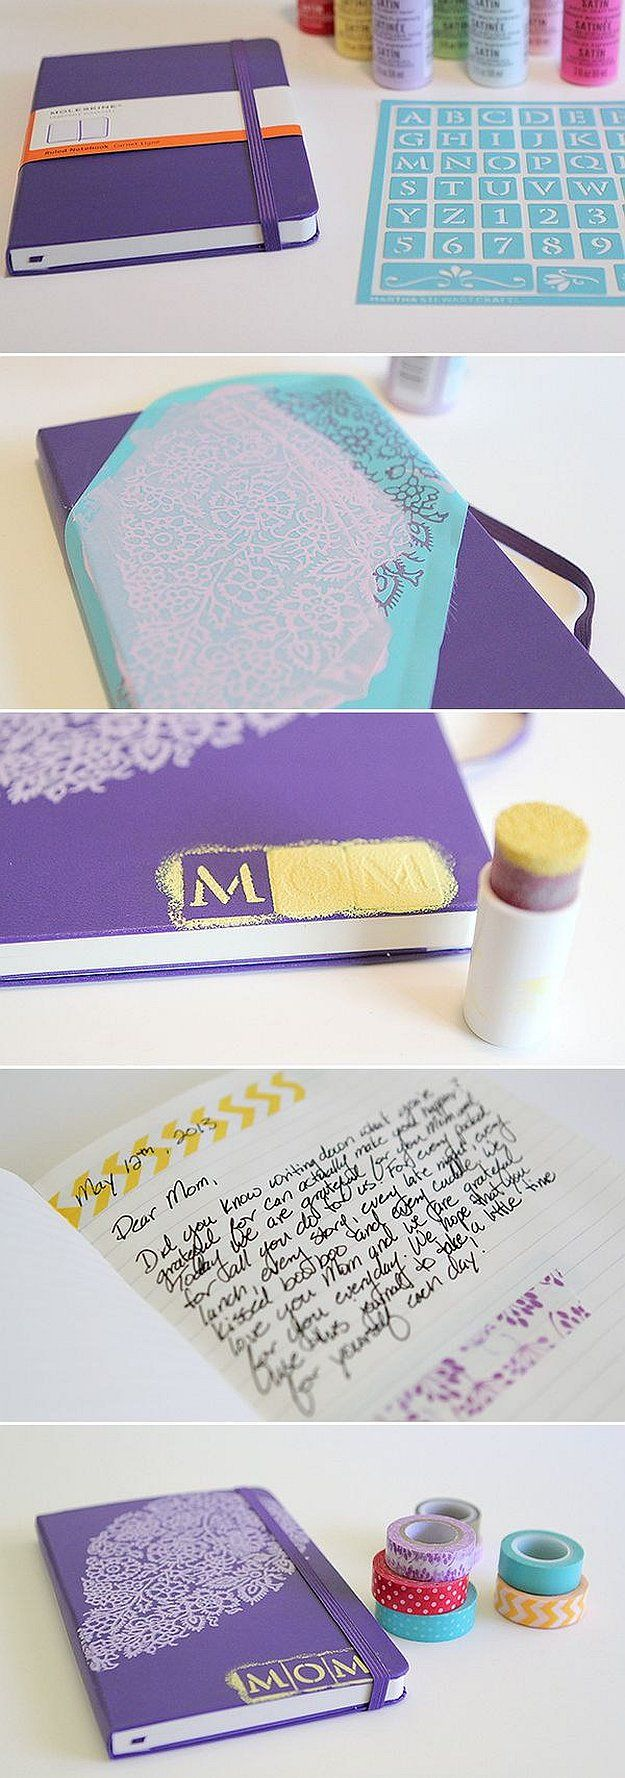 418 best diy gifts for moms images on pinterest bricolage craft 418 best diy gifts for moms images on pinterest bricolage craft and gift ideas solutioingenieria Gallery